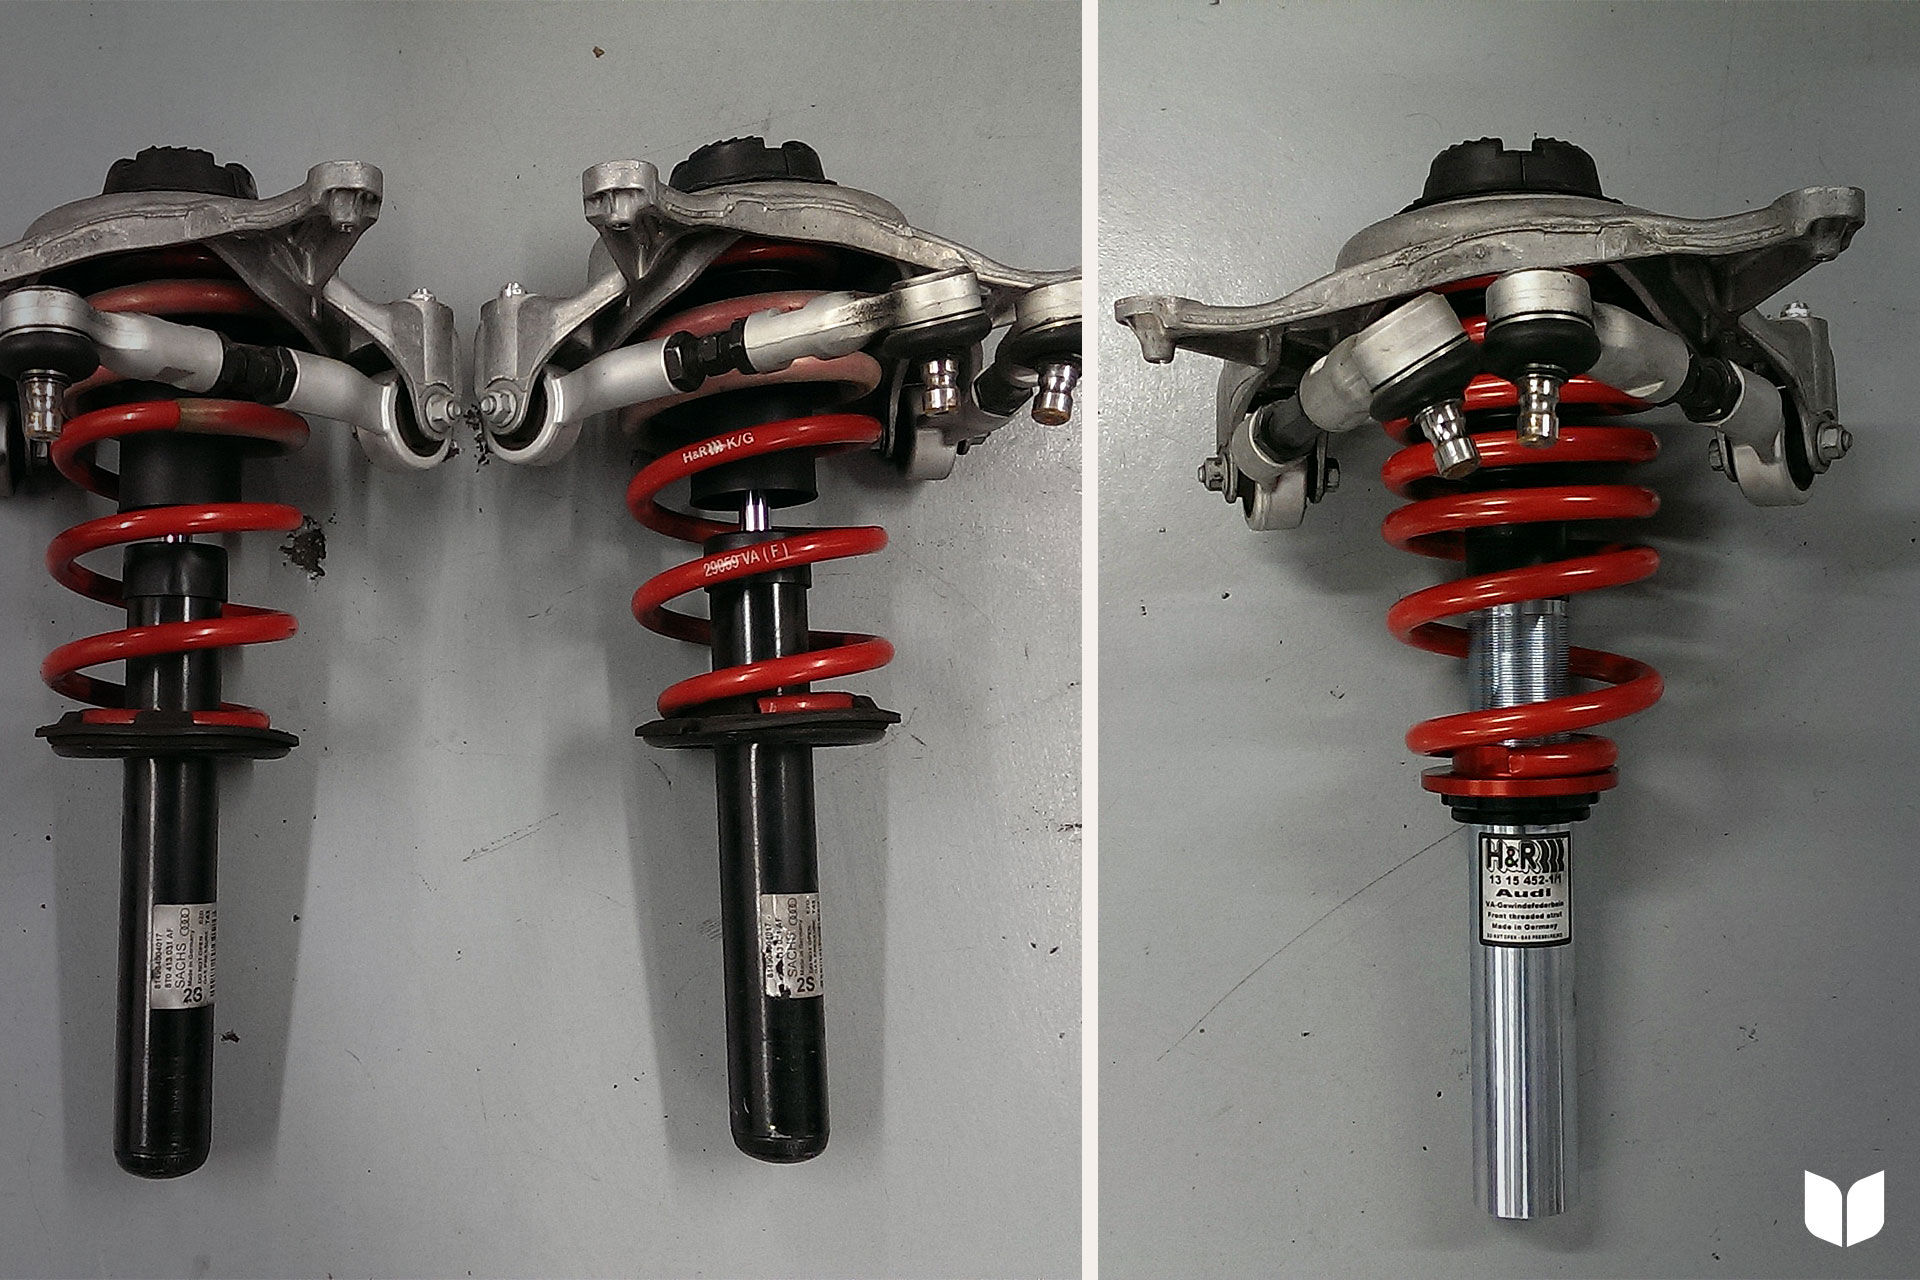 H&R Springs vs. H&R Coilovers